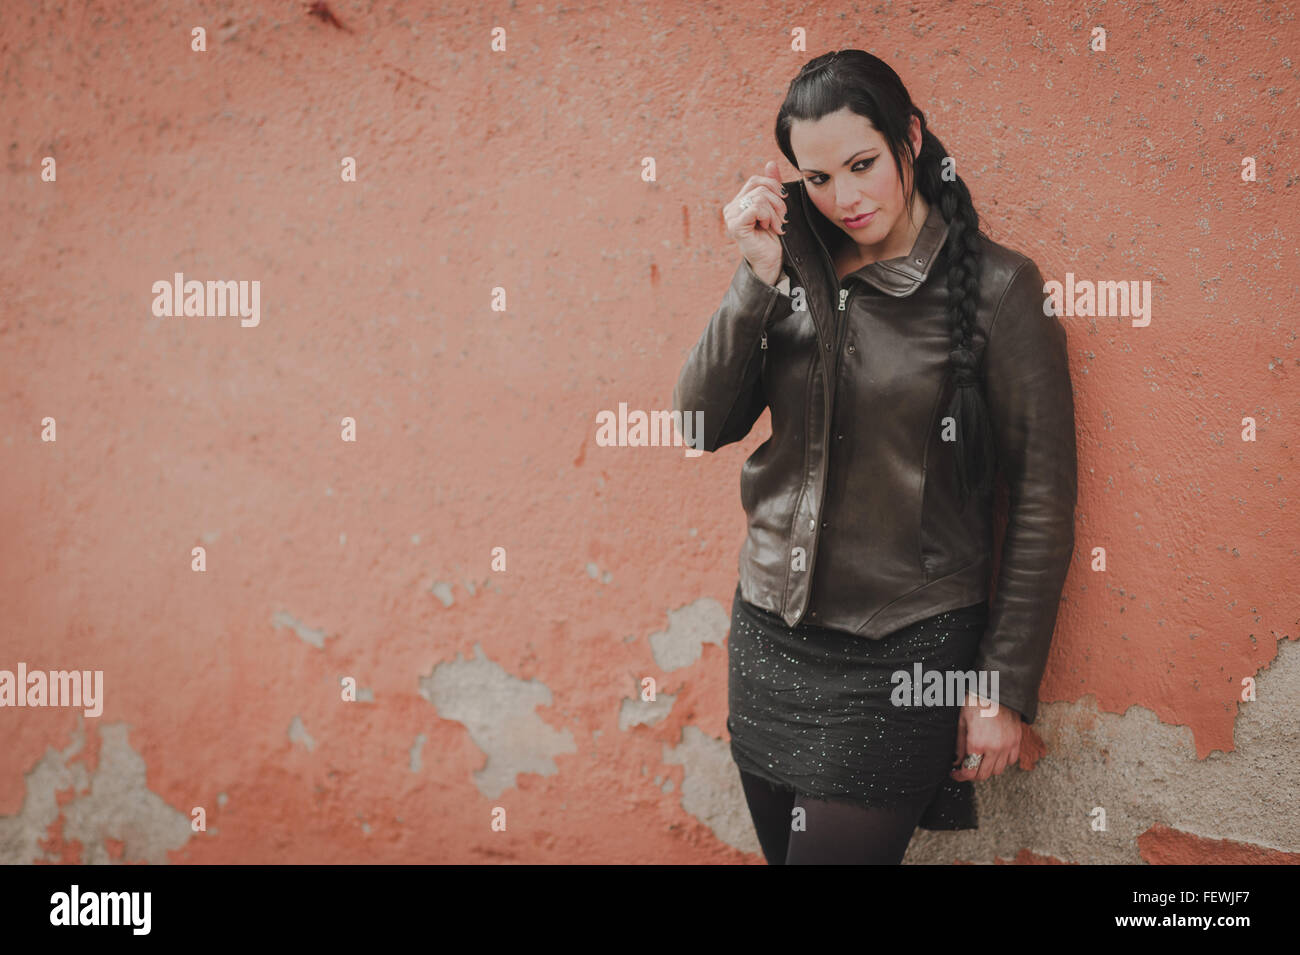 Woman Leaning On Wall - Stock Image